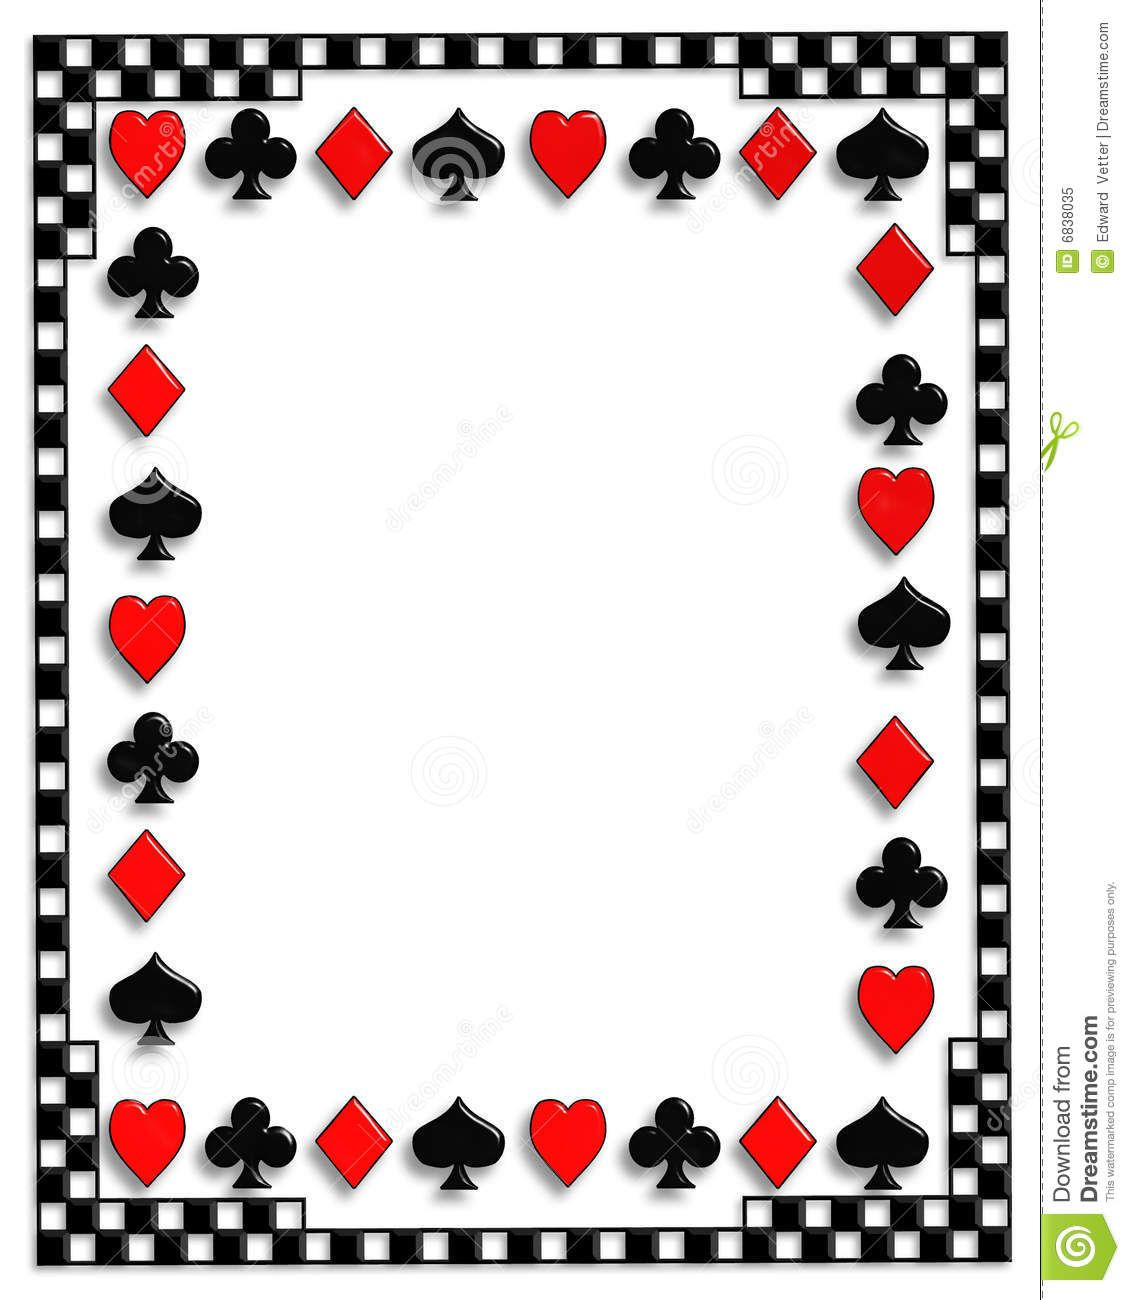 Playing Card Images Free – Playing Card Invitation